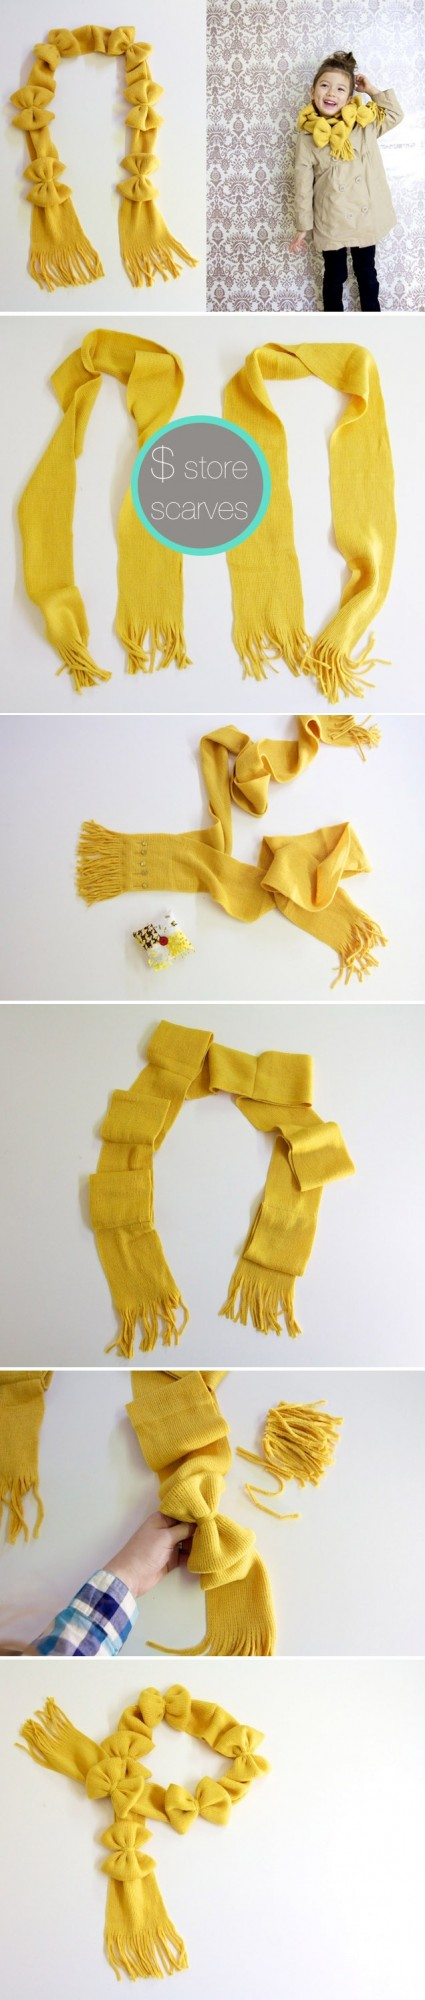 29 Great DIY Useful Ideas (6)